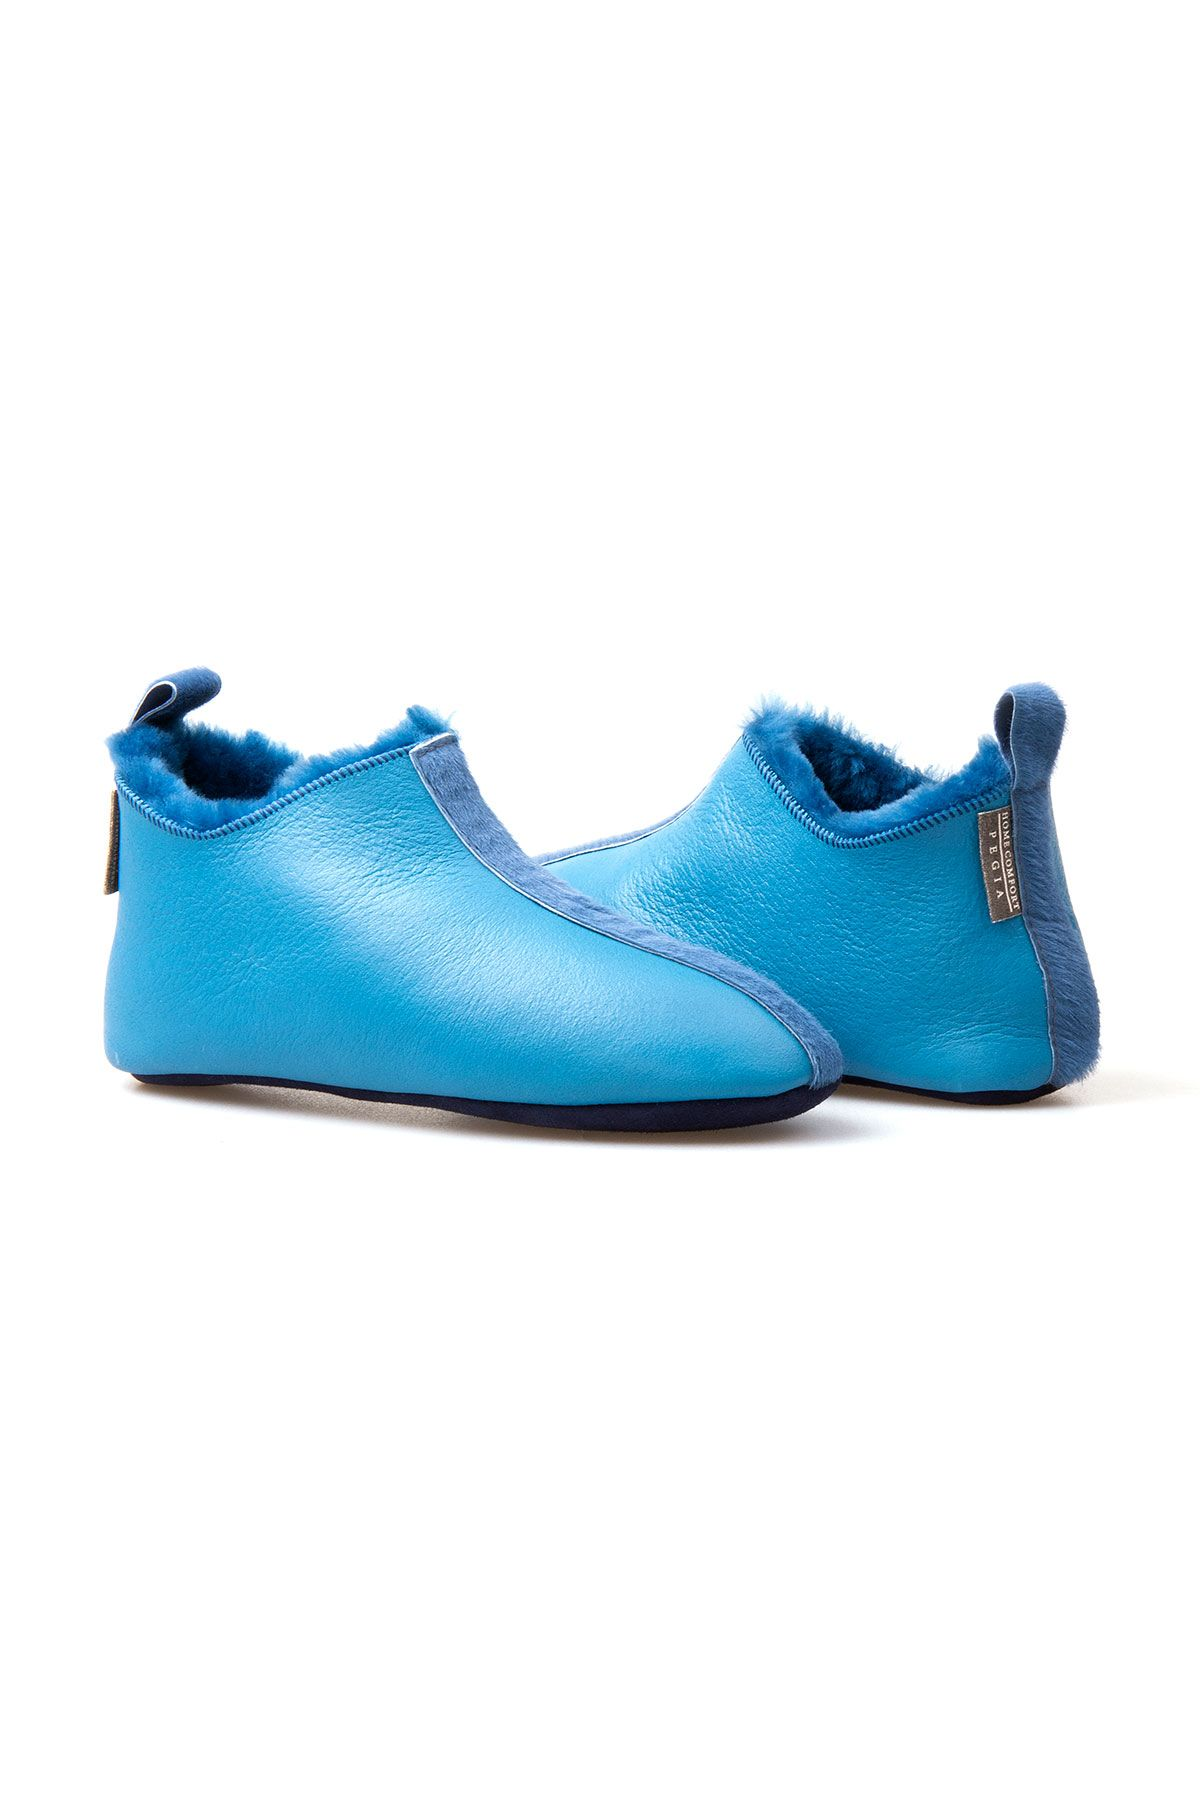 Pegia Women Shearling House Shoes 213502 Turquoise